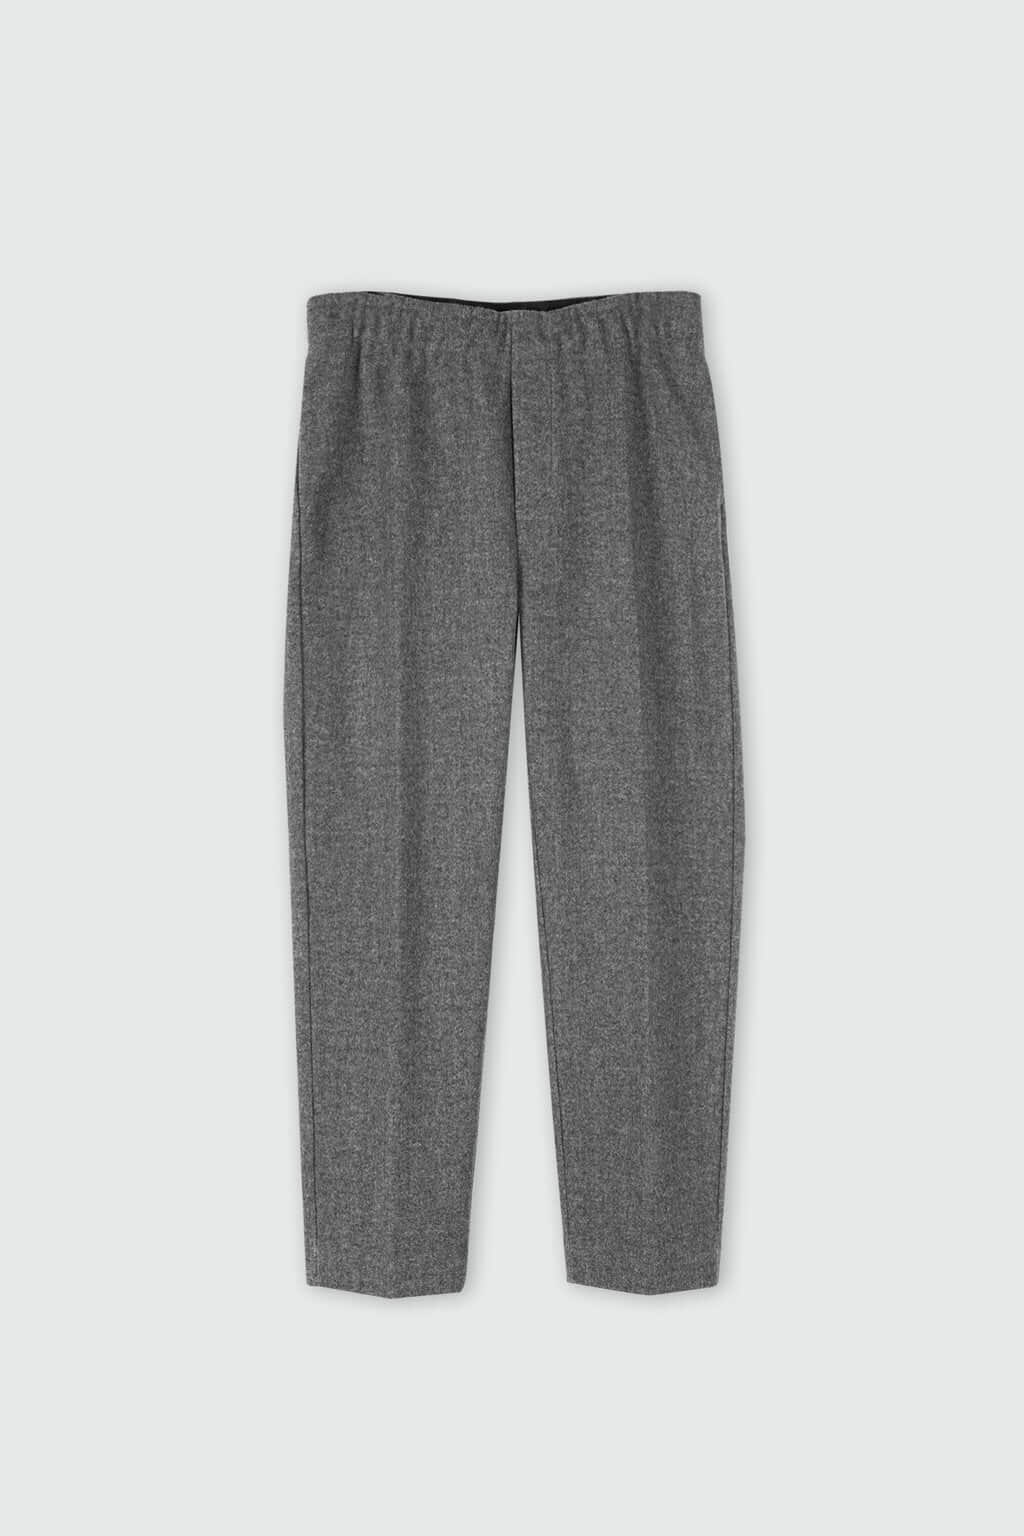 Pant 2673 Heather Gray 4